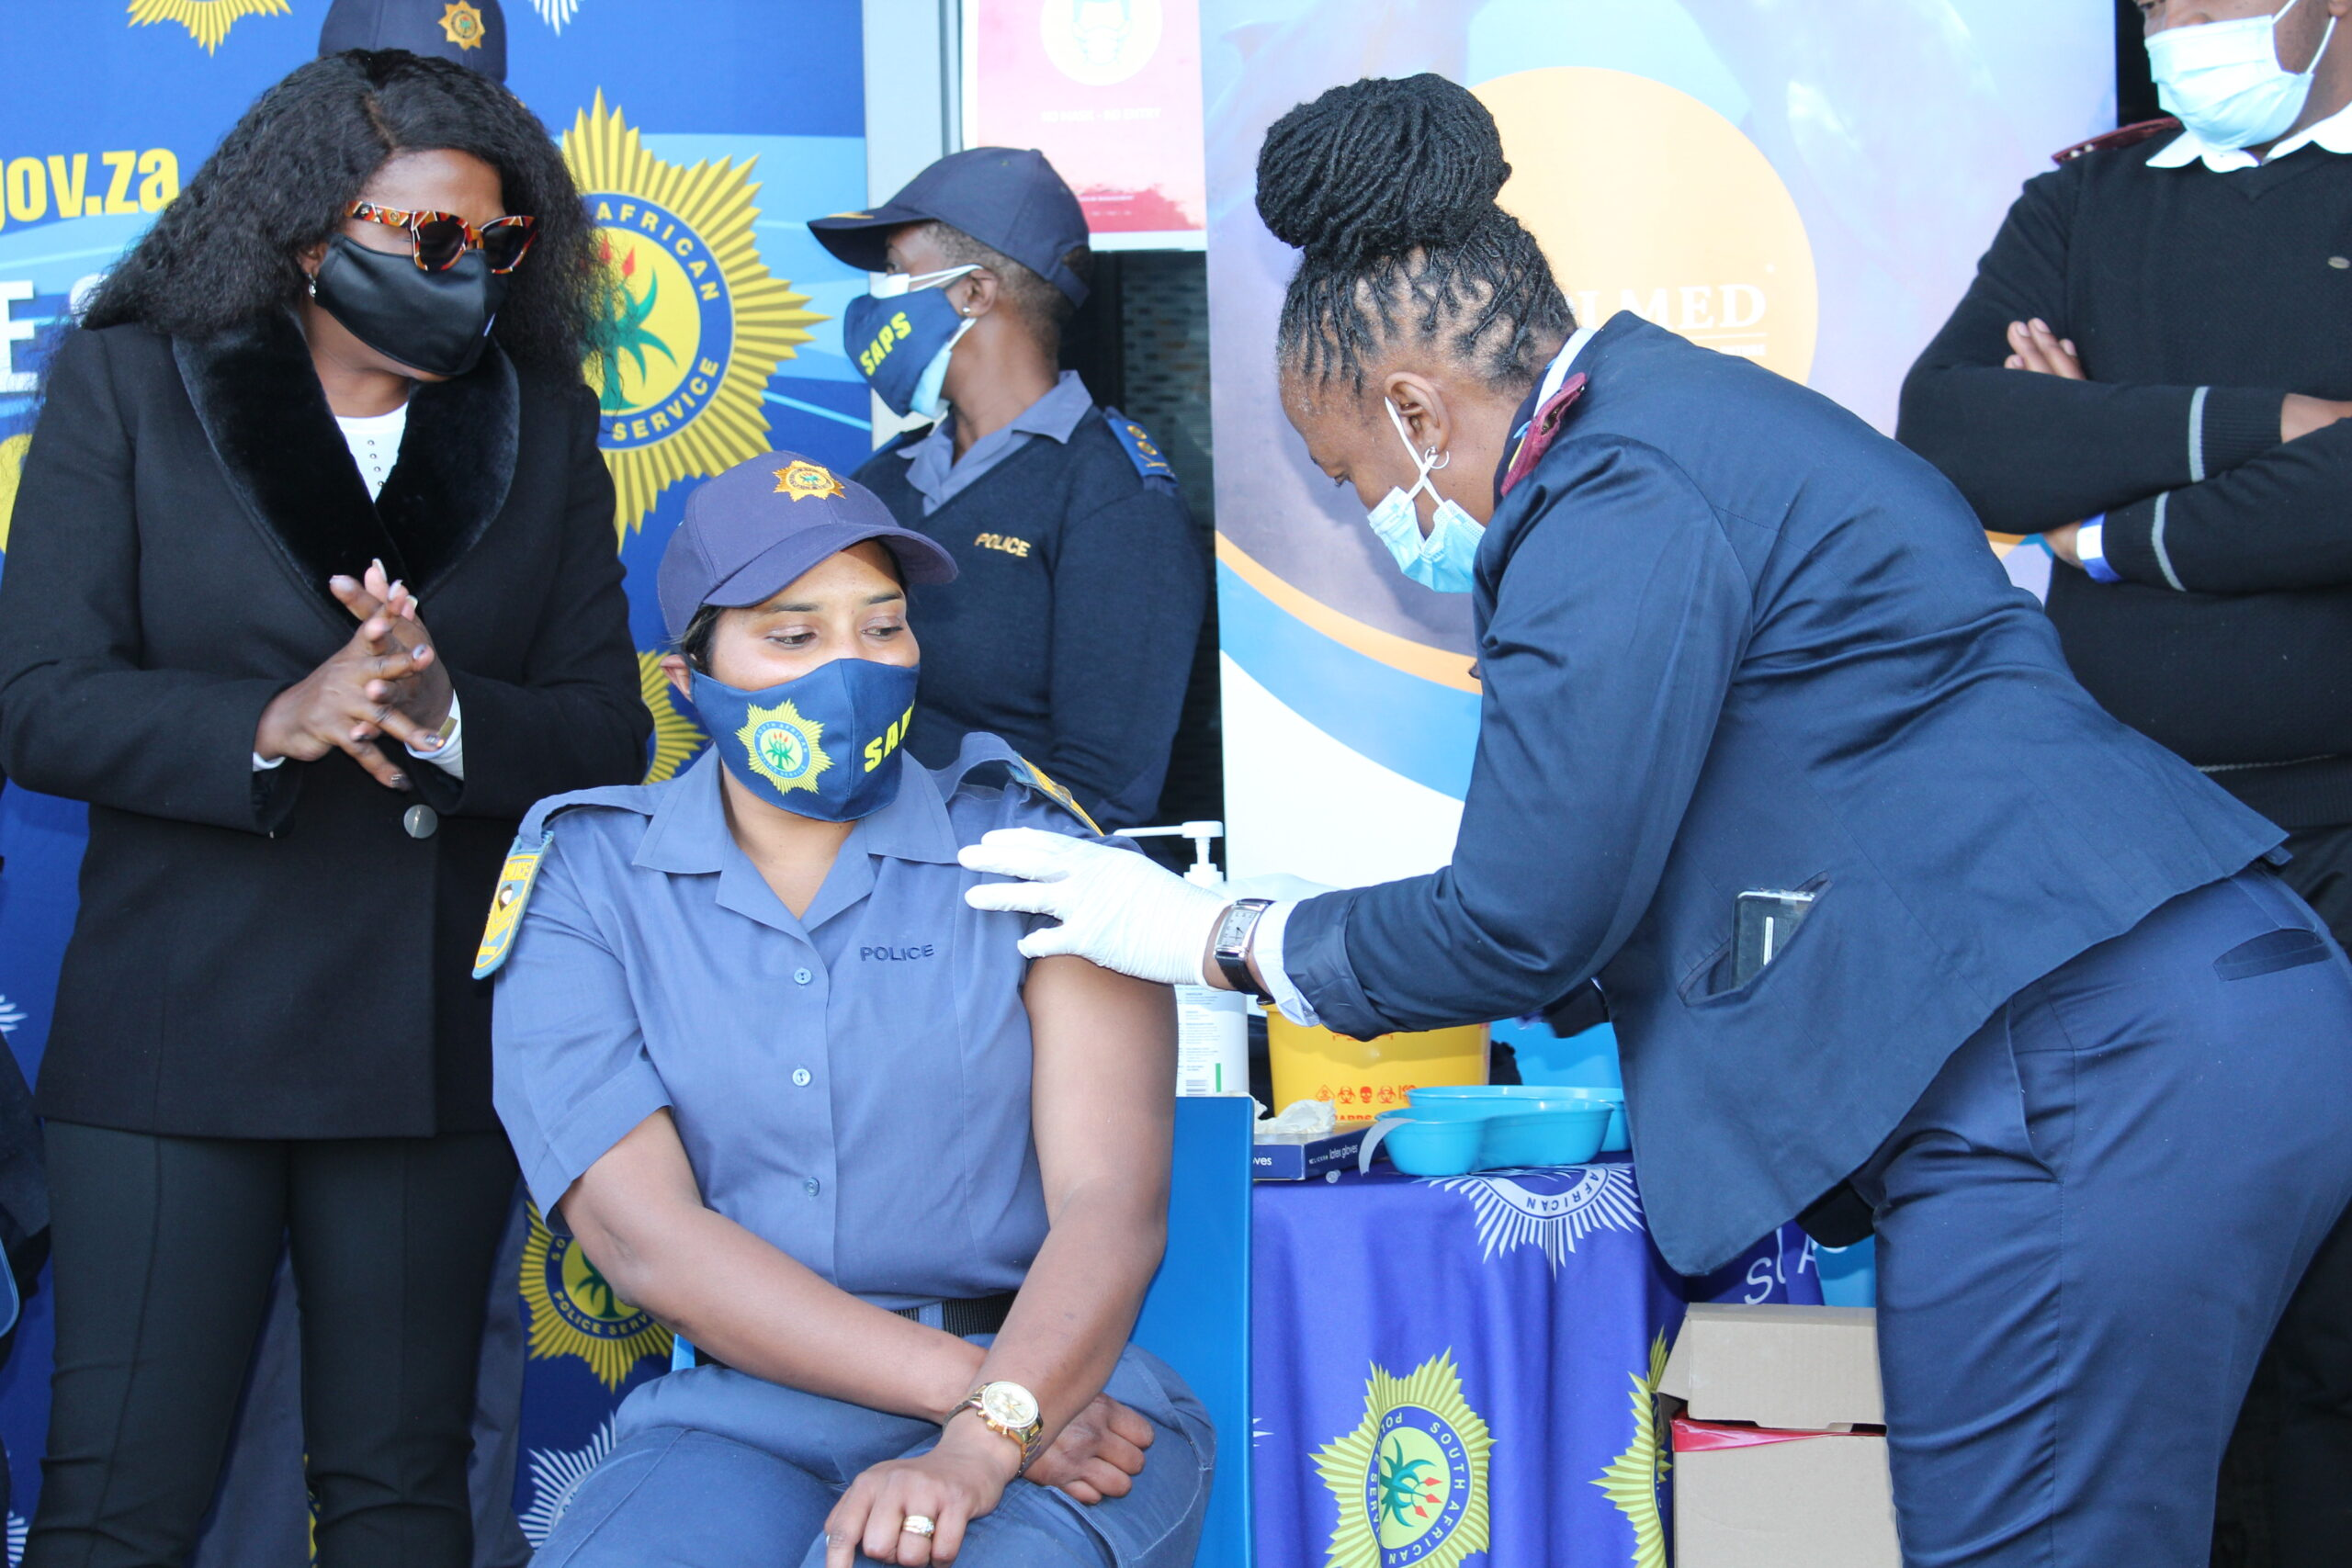 The South African Police Service is being vaccinated as of early July 2021